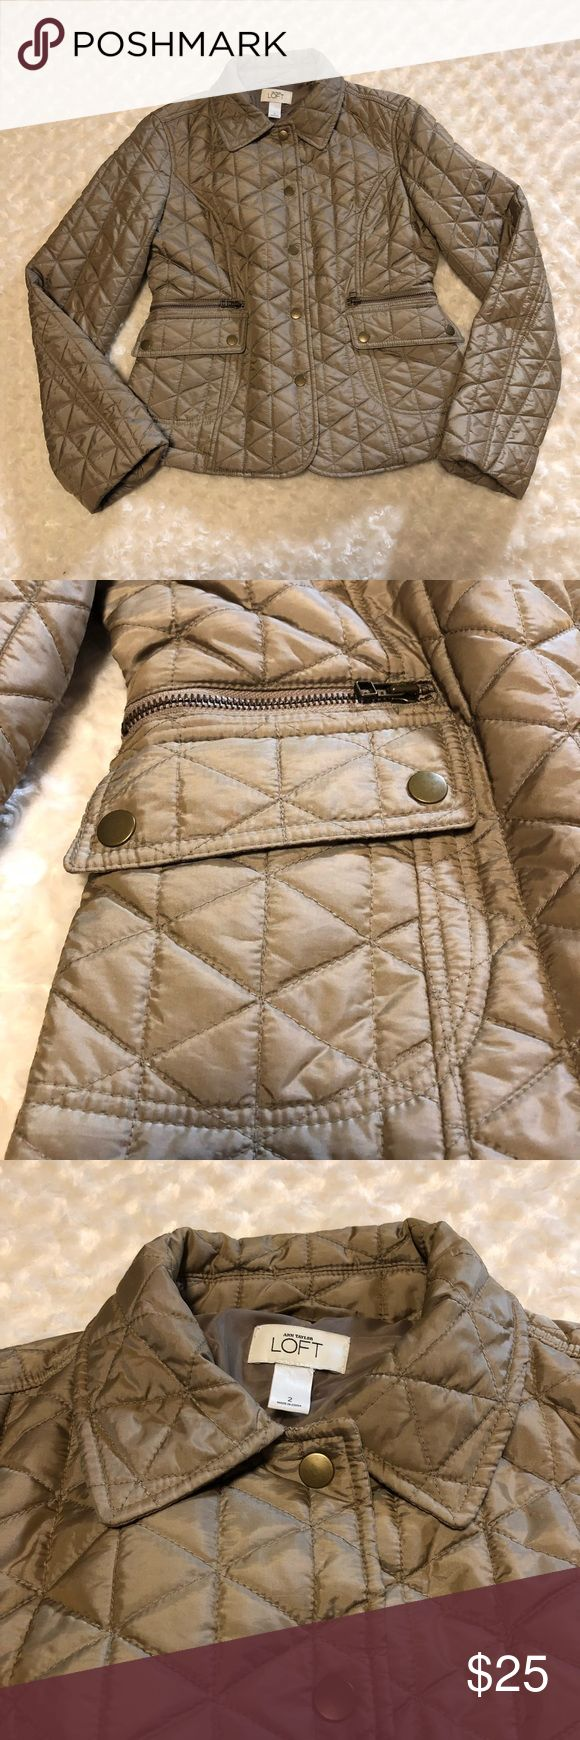 Anne Taylor Loft quilted jacket Ann Taylor Loft quilted jacket Size: 2 Color: Gold - seems to be iridescent in very good pre-owned condition Ann Taylor Loft Jackets & Coats